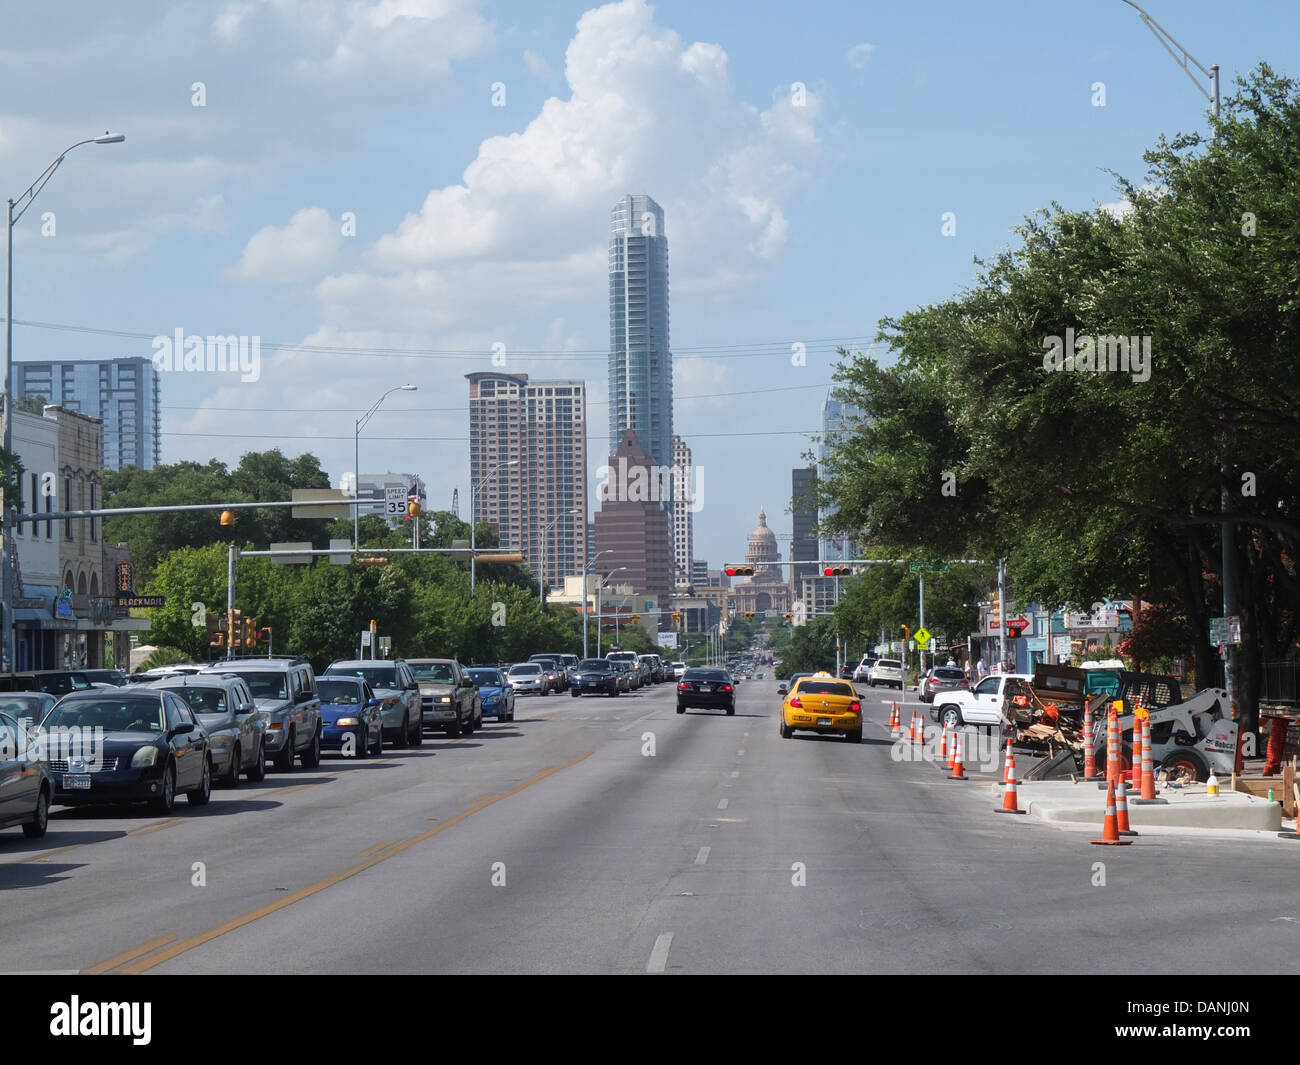 South Congress Avenue  Austin Texas Shops signs - Stock Image